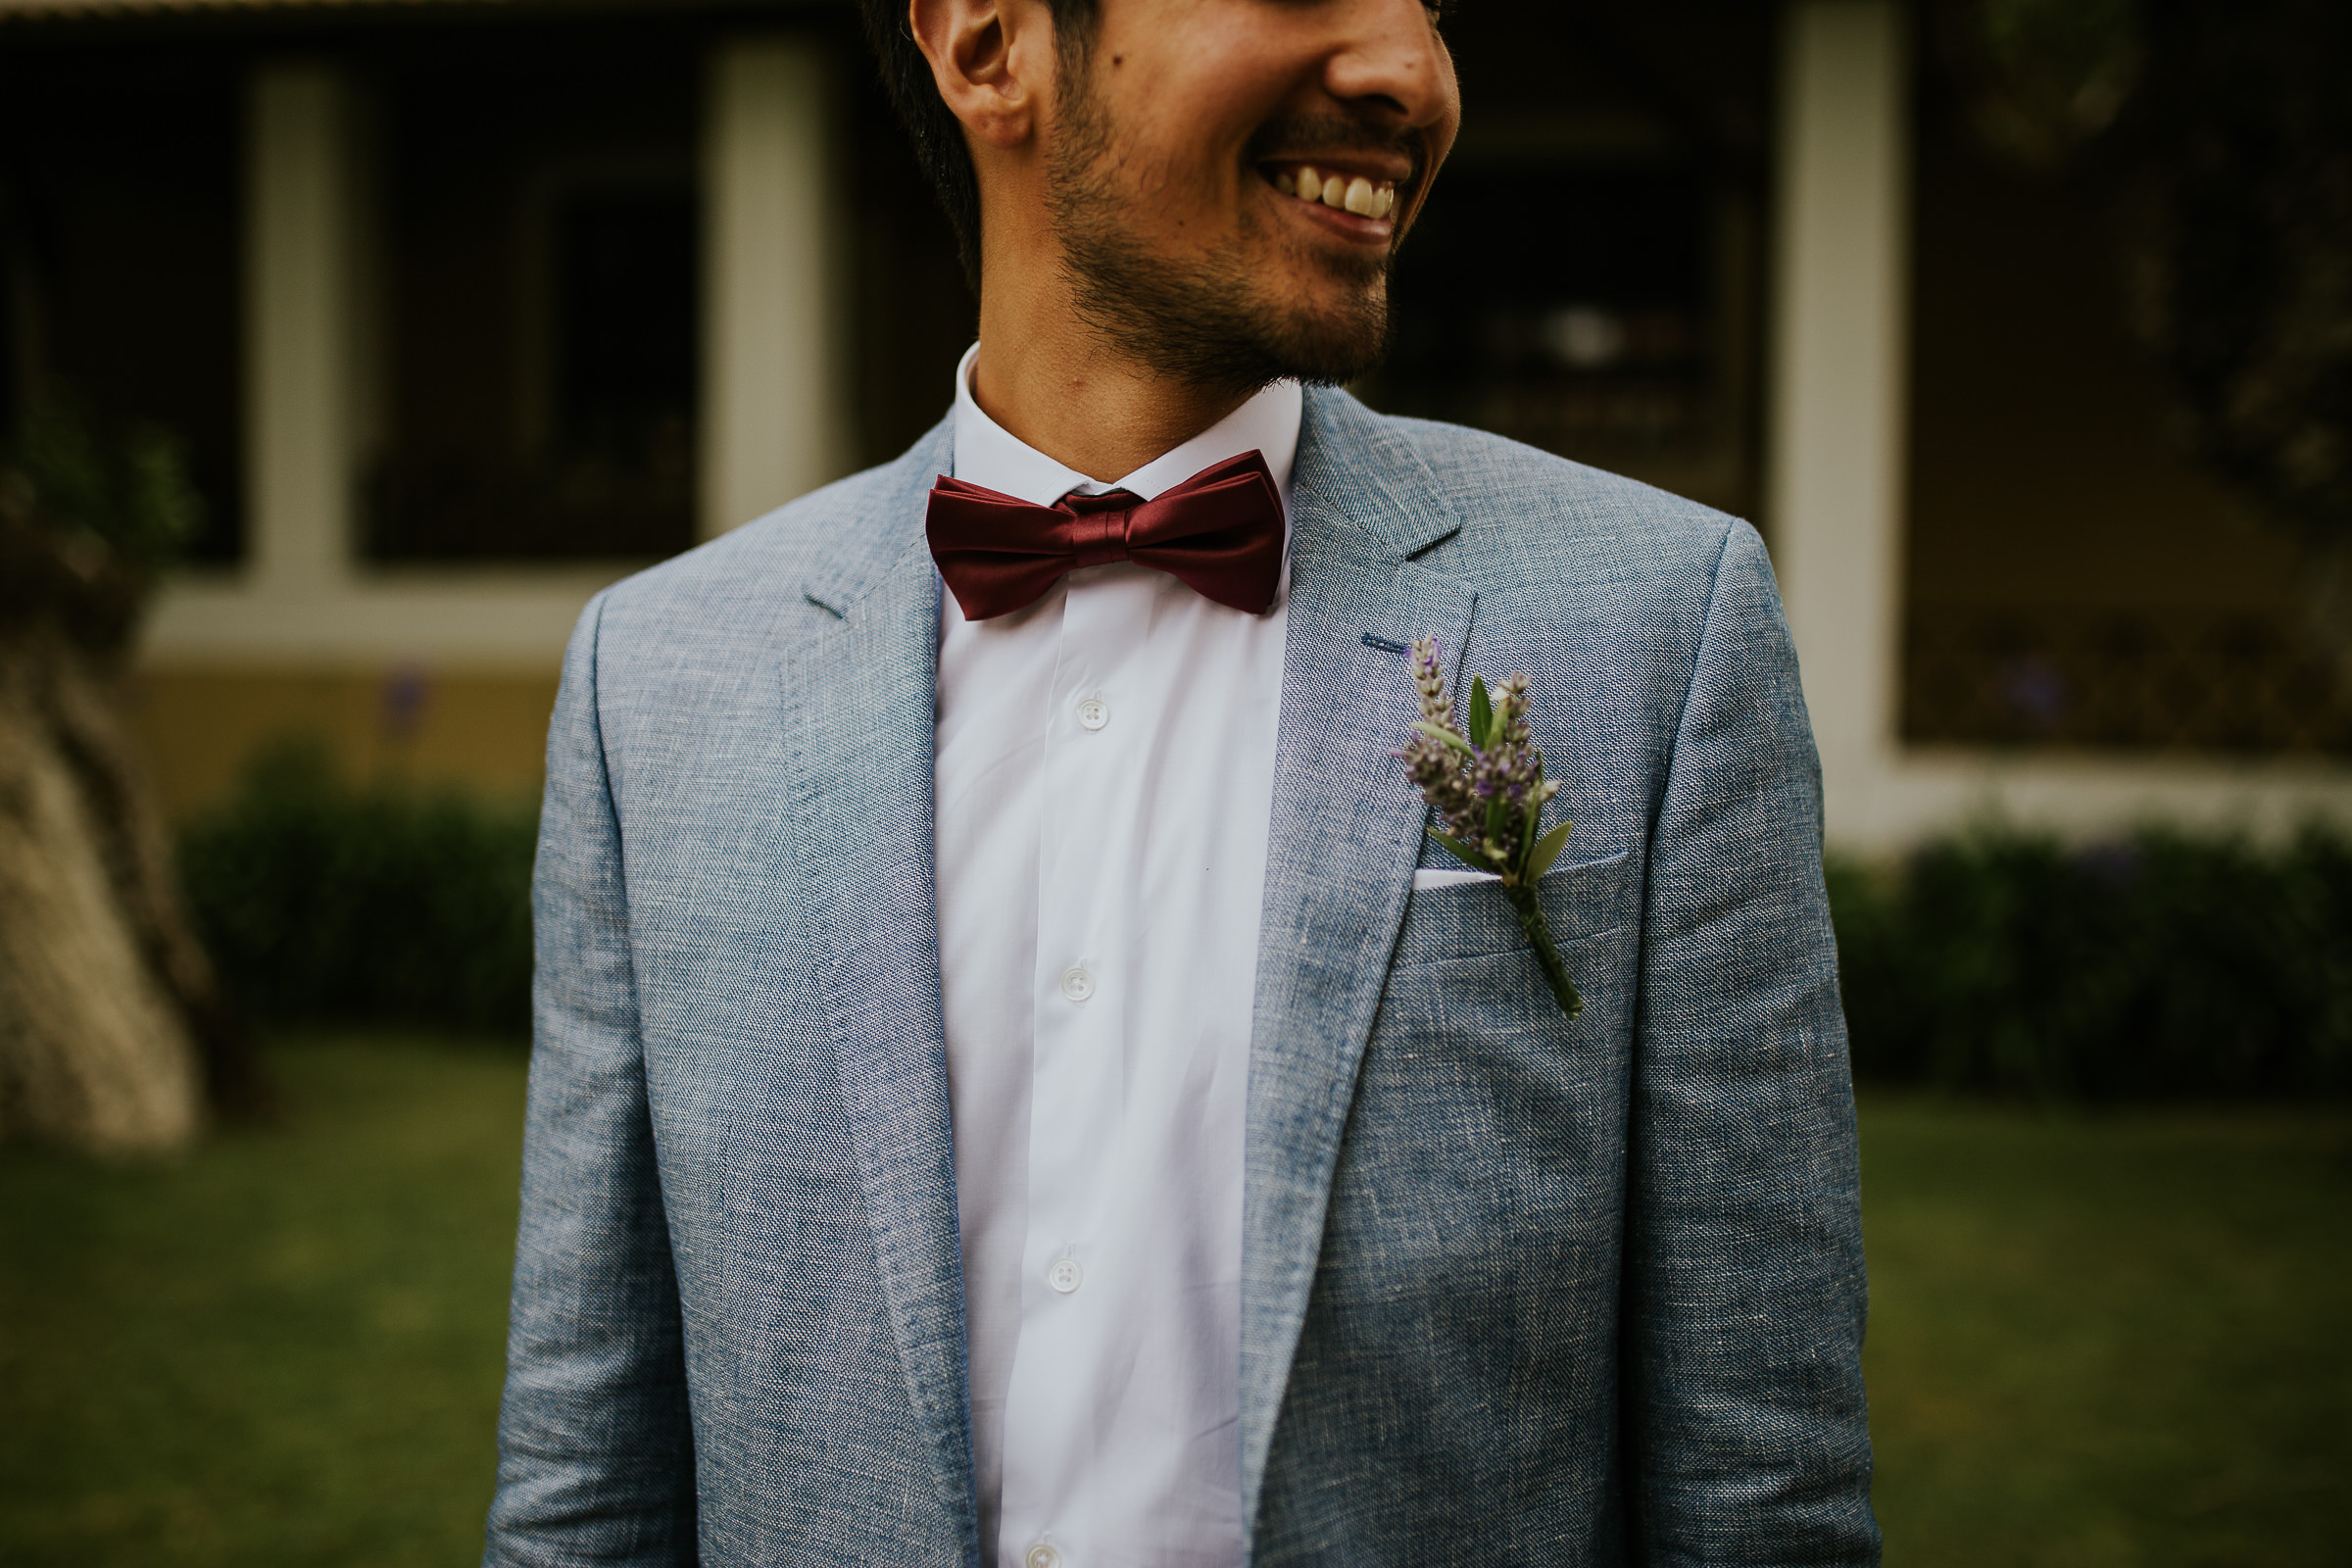 Cropped portrait of the grooms smile and his wedding outfit